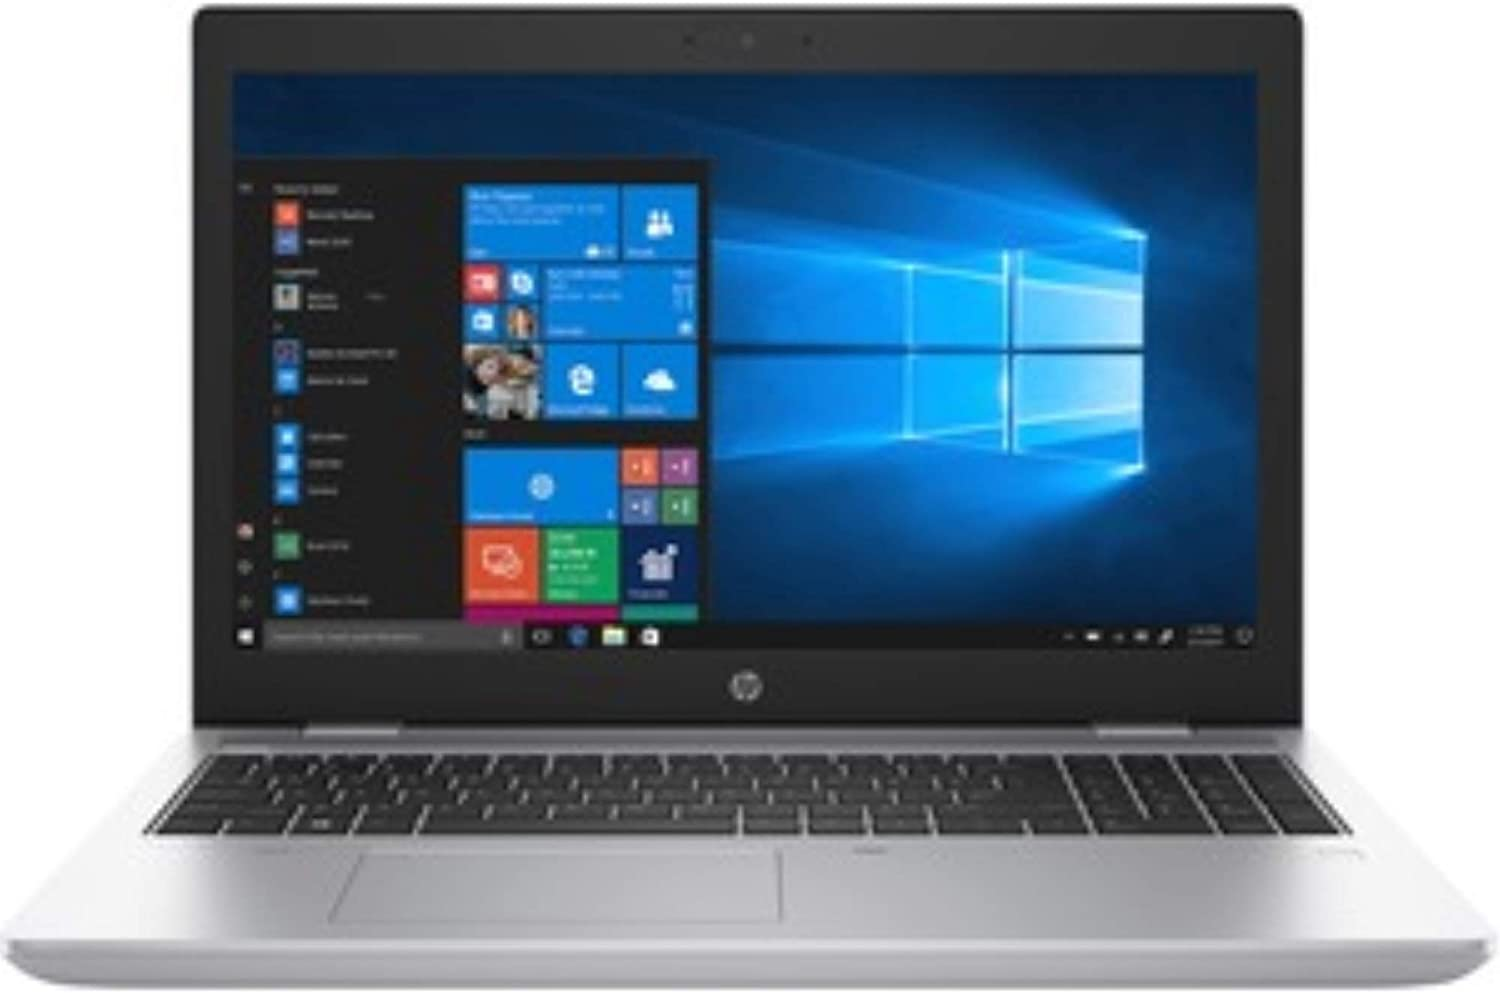 "HP ProBook 650 G5 15.6"" Notebook - 1920 x 1080 - Core i7 i7-8665U - 16 GB RAM - 16 GB Optane Memory - 256 GB SSD - Windows 10 Pro 64-bit - Intel UHD Graphics 620 - in-Plane Switching (IPS) Techno"